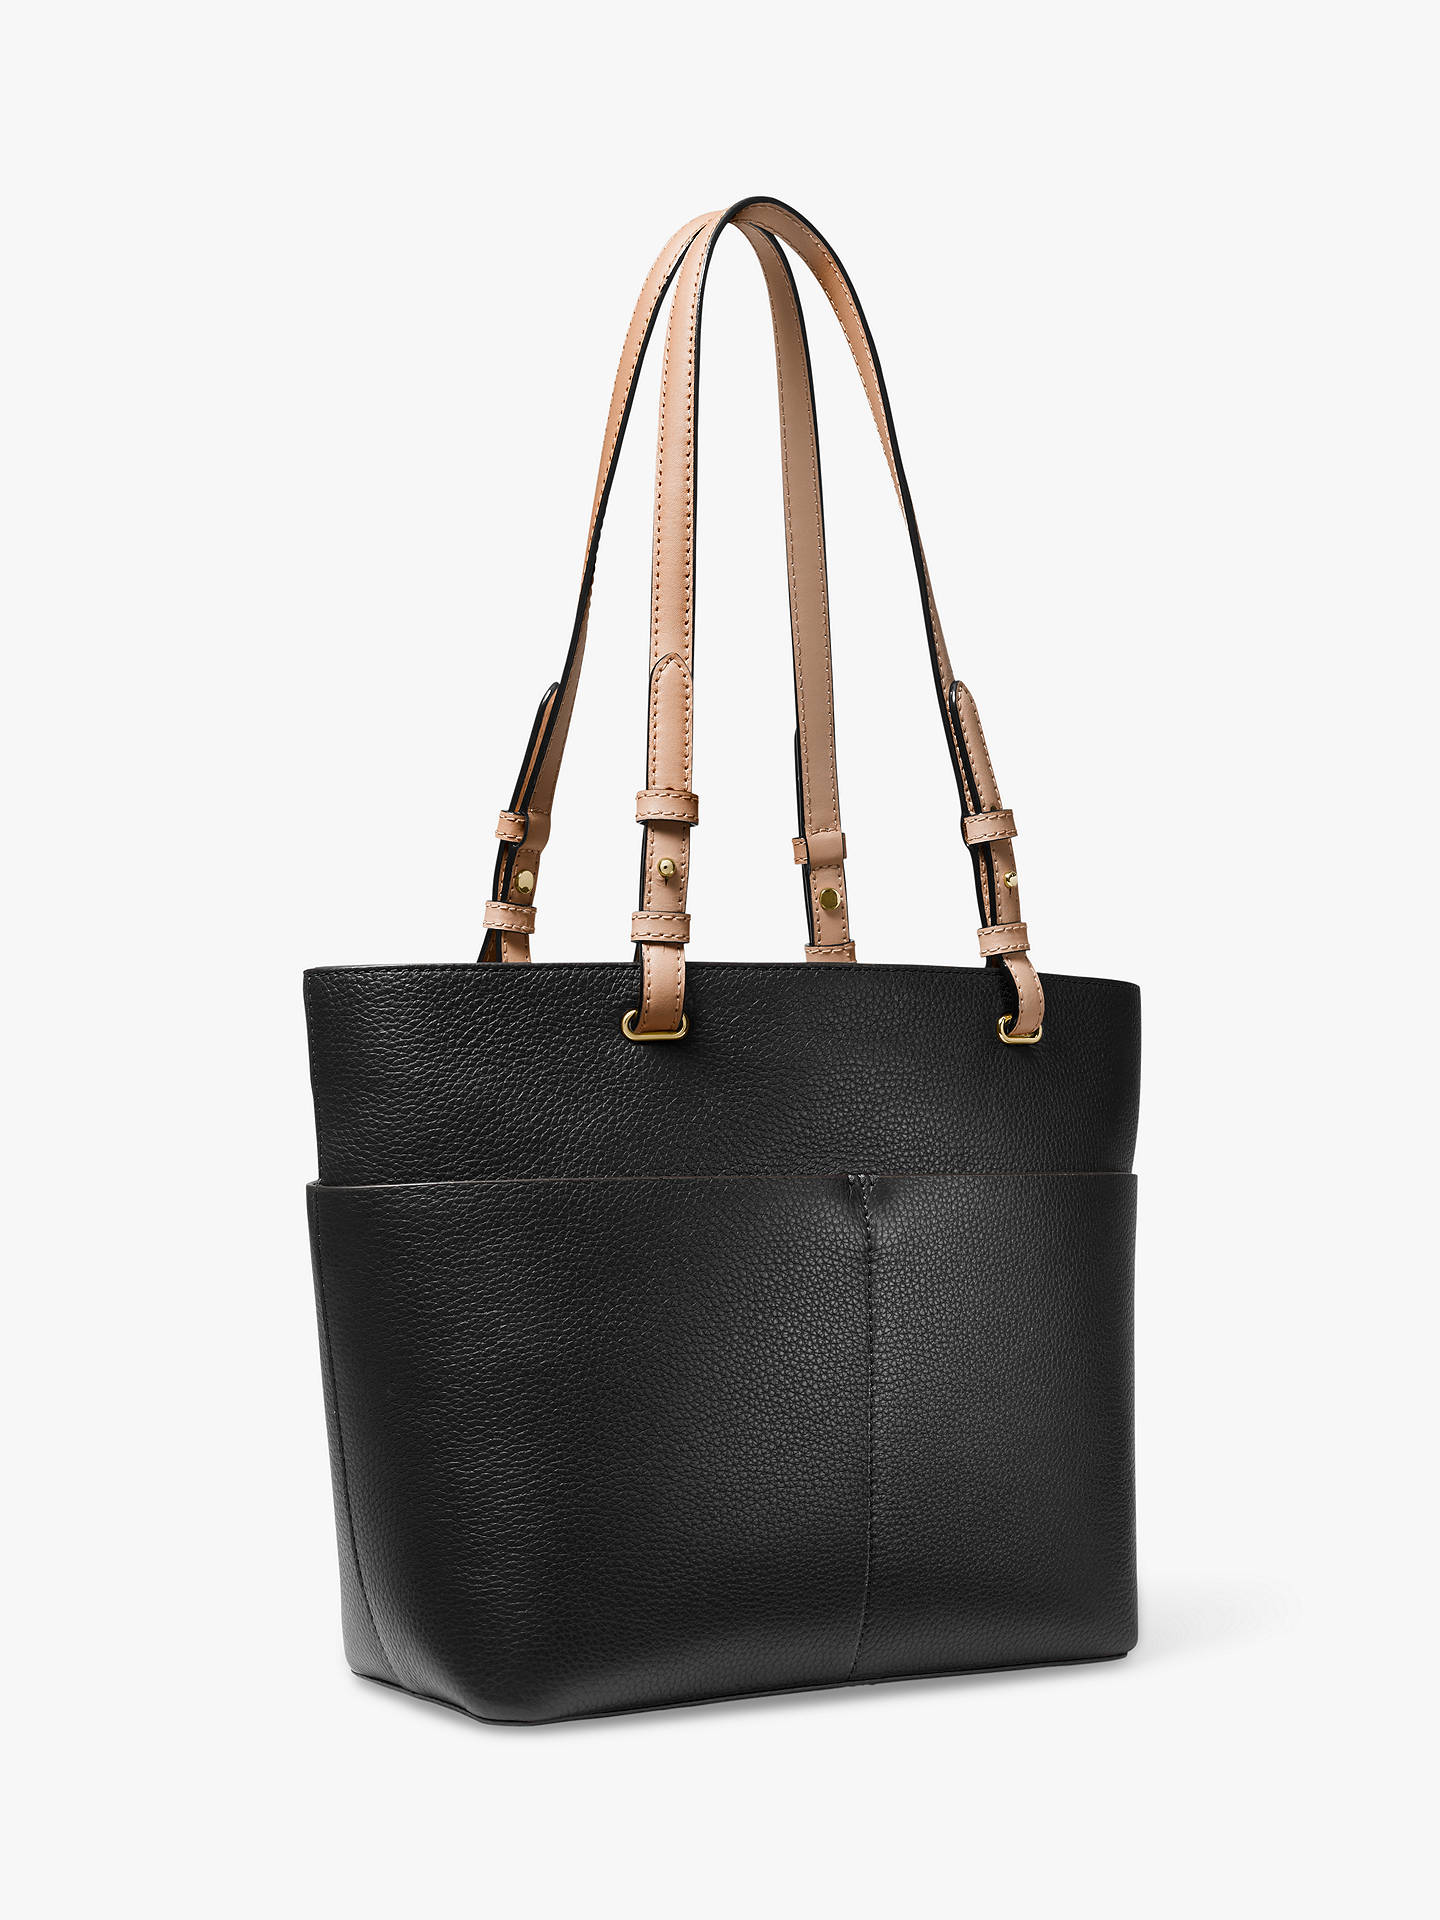 6e03162866ec ... Buy MICHAEL Michael Kors Bedford Pocket Tote Bag, Black Online at  johnlewis.com ...